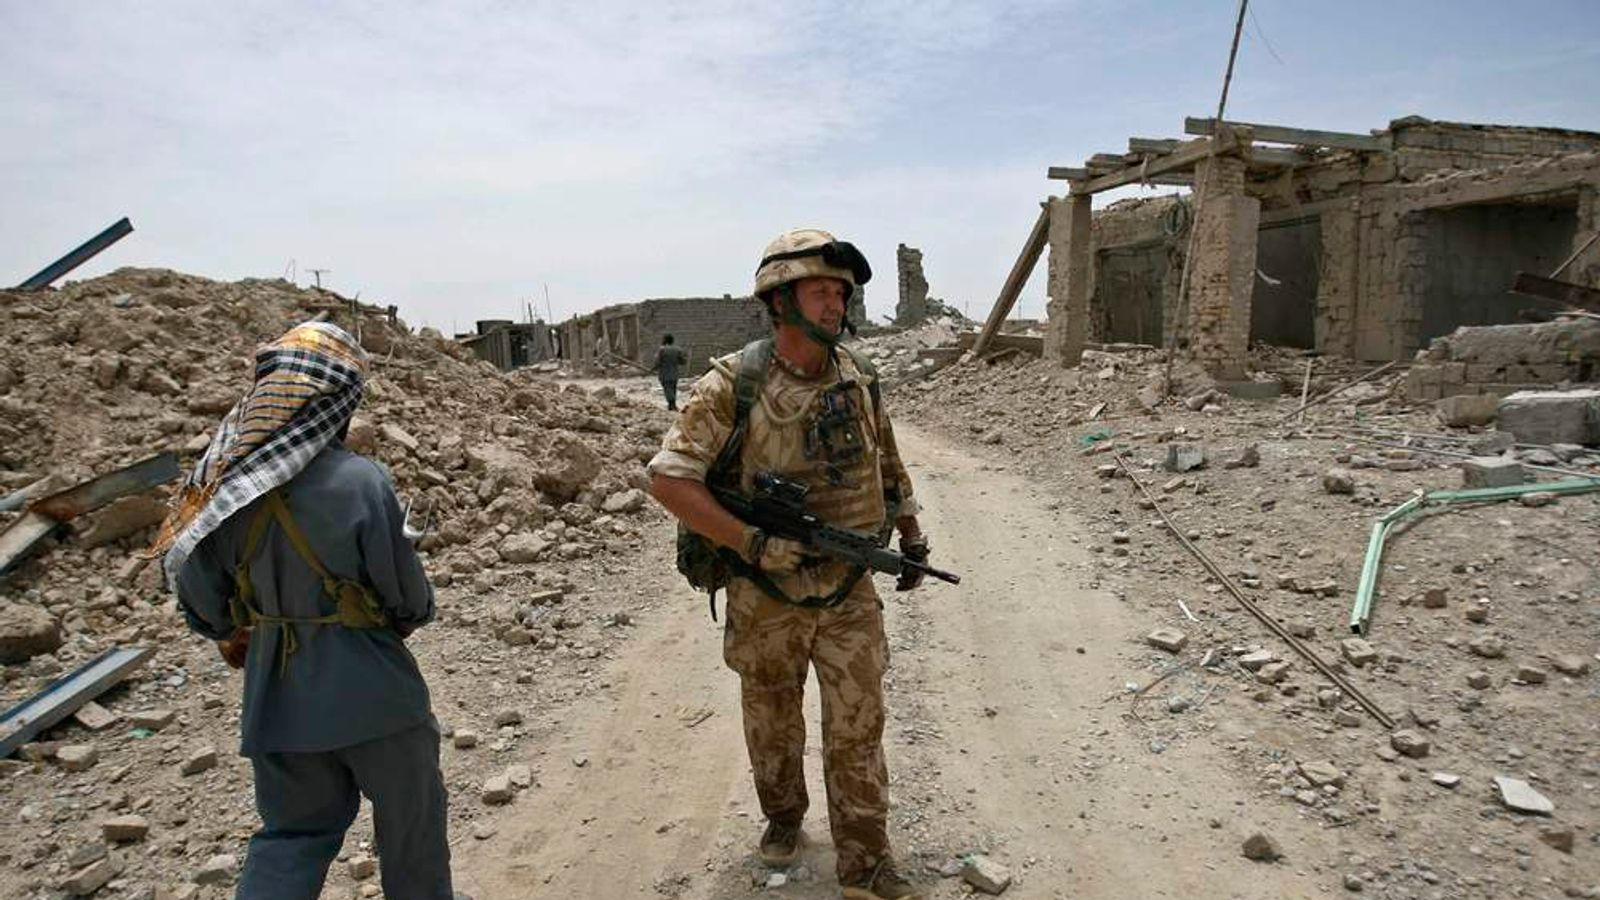 A British soldier and an Afghan policeman patrol in Afghanistan's Sangin valley